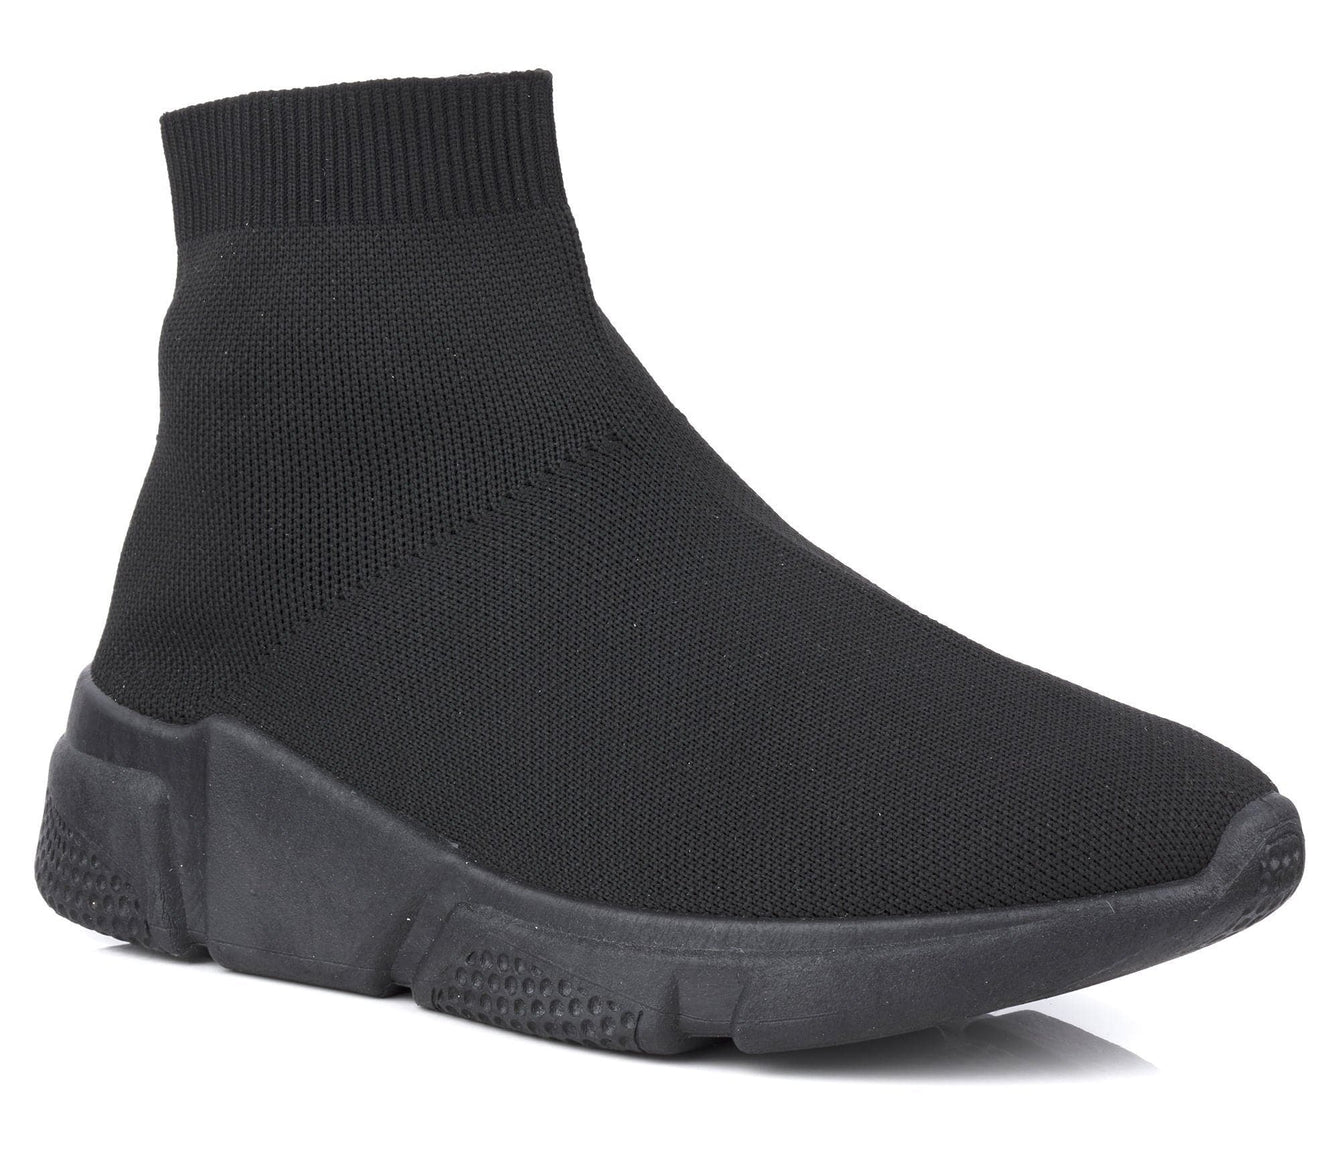 Knitted Slip on Sock Boot in Black Black Sole